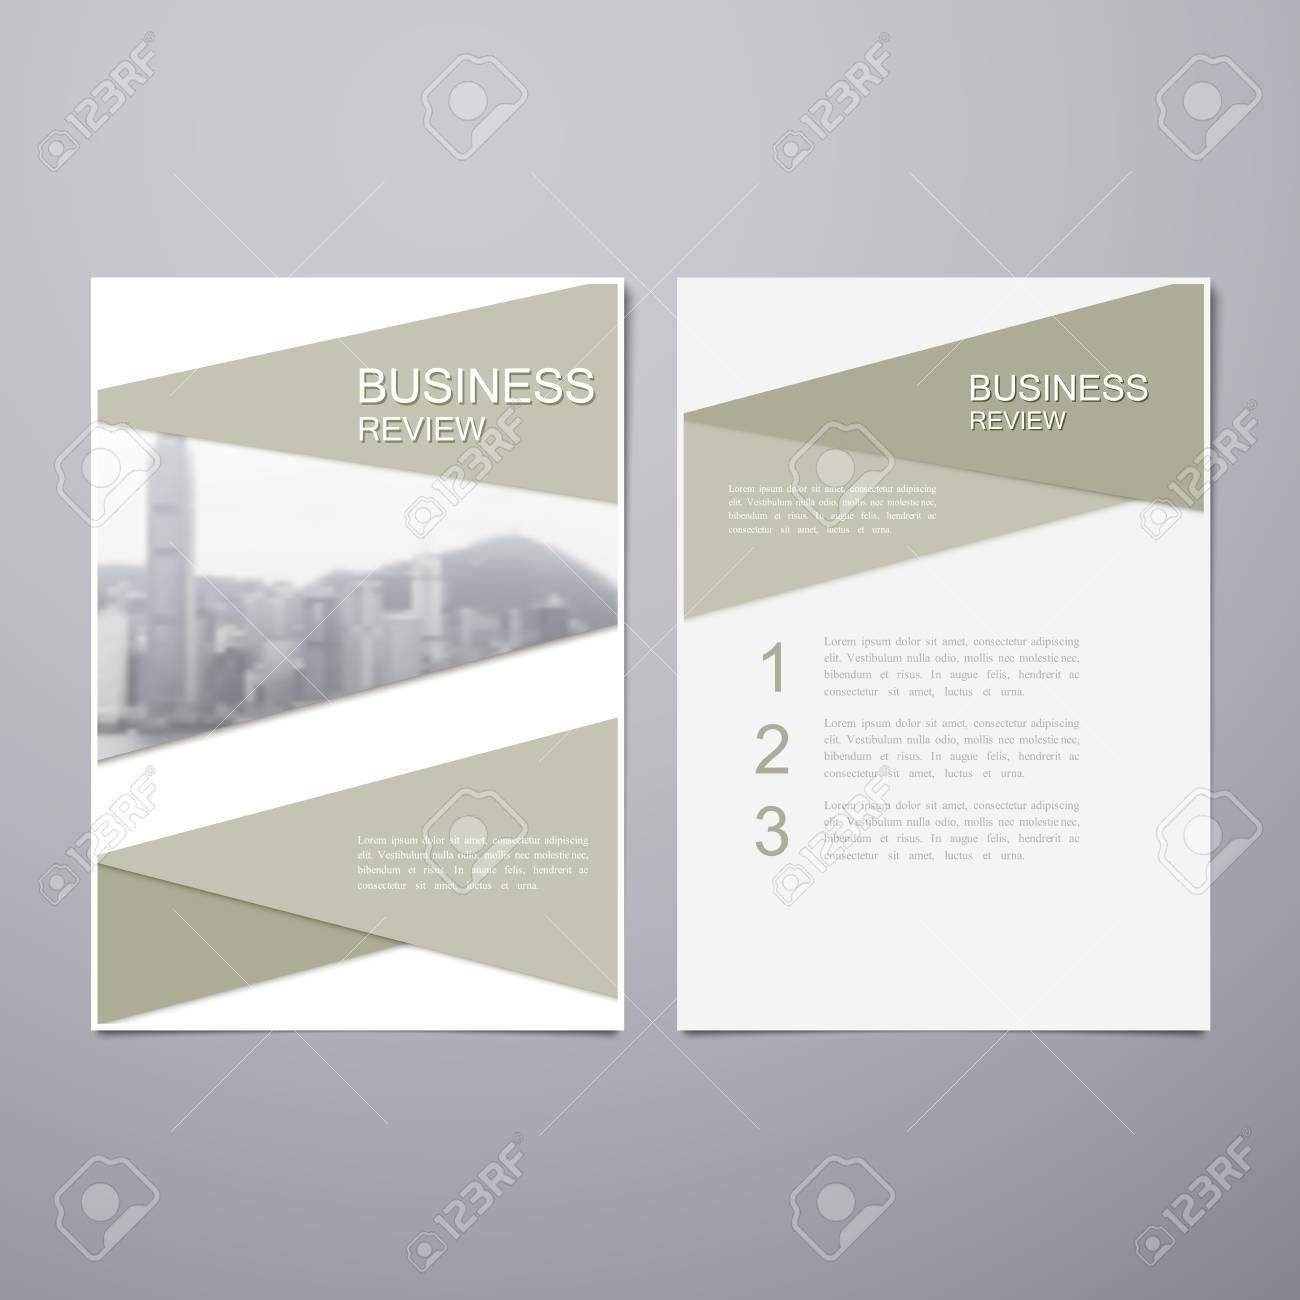 Business Review Leaflet  Brochure or Flyer A4 size template design